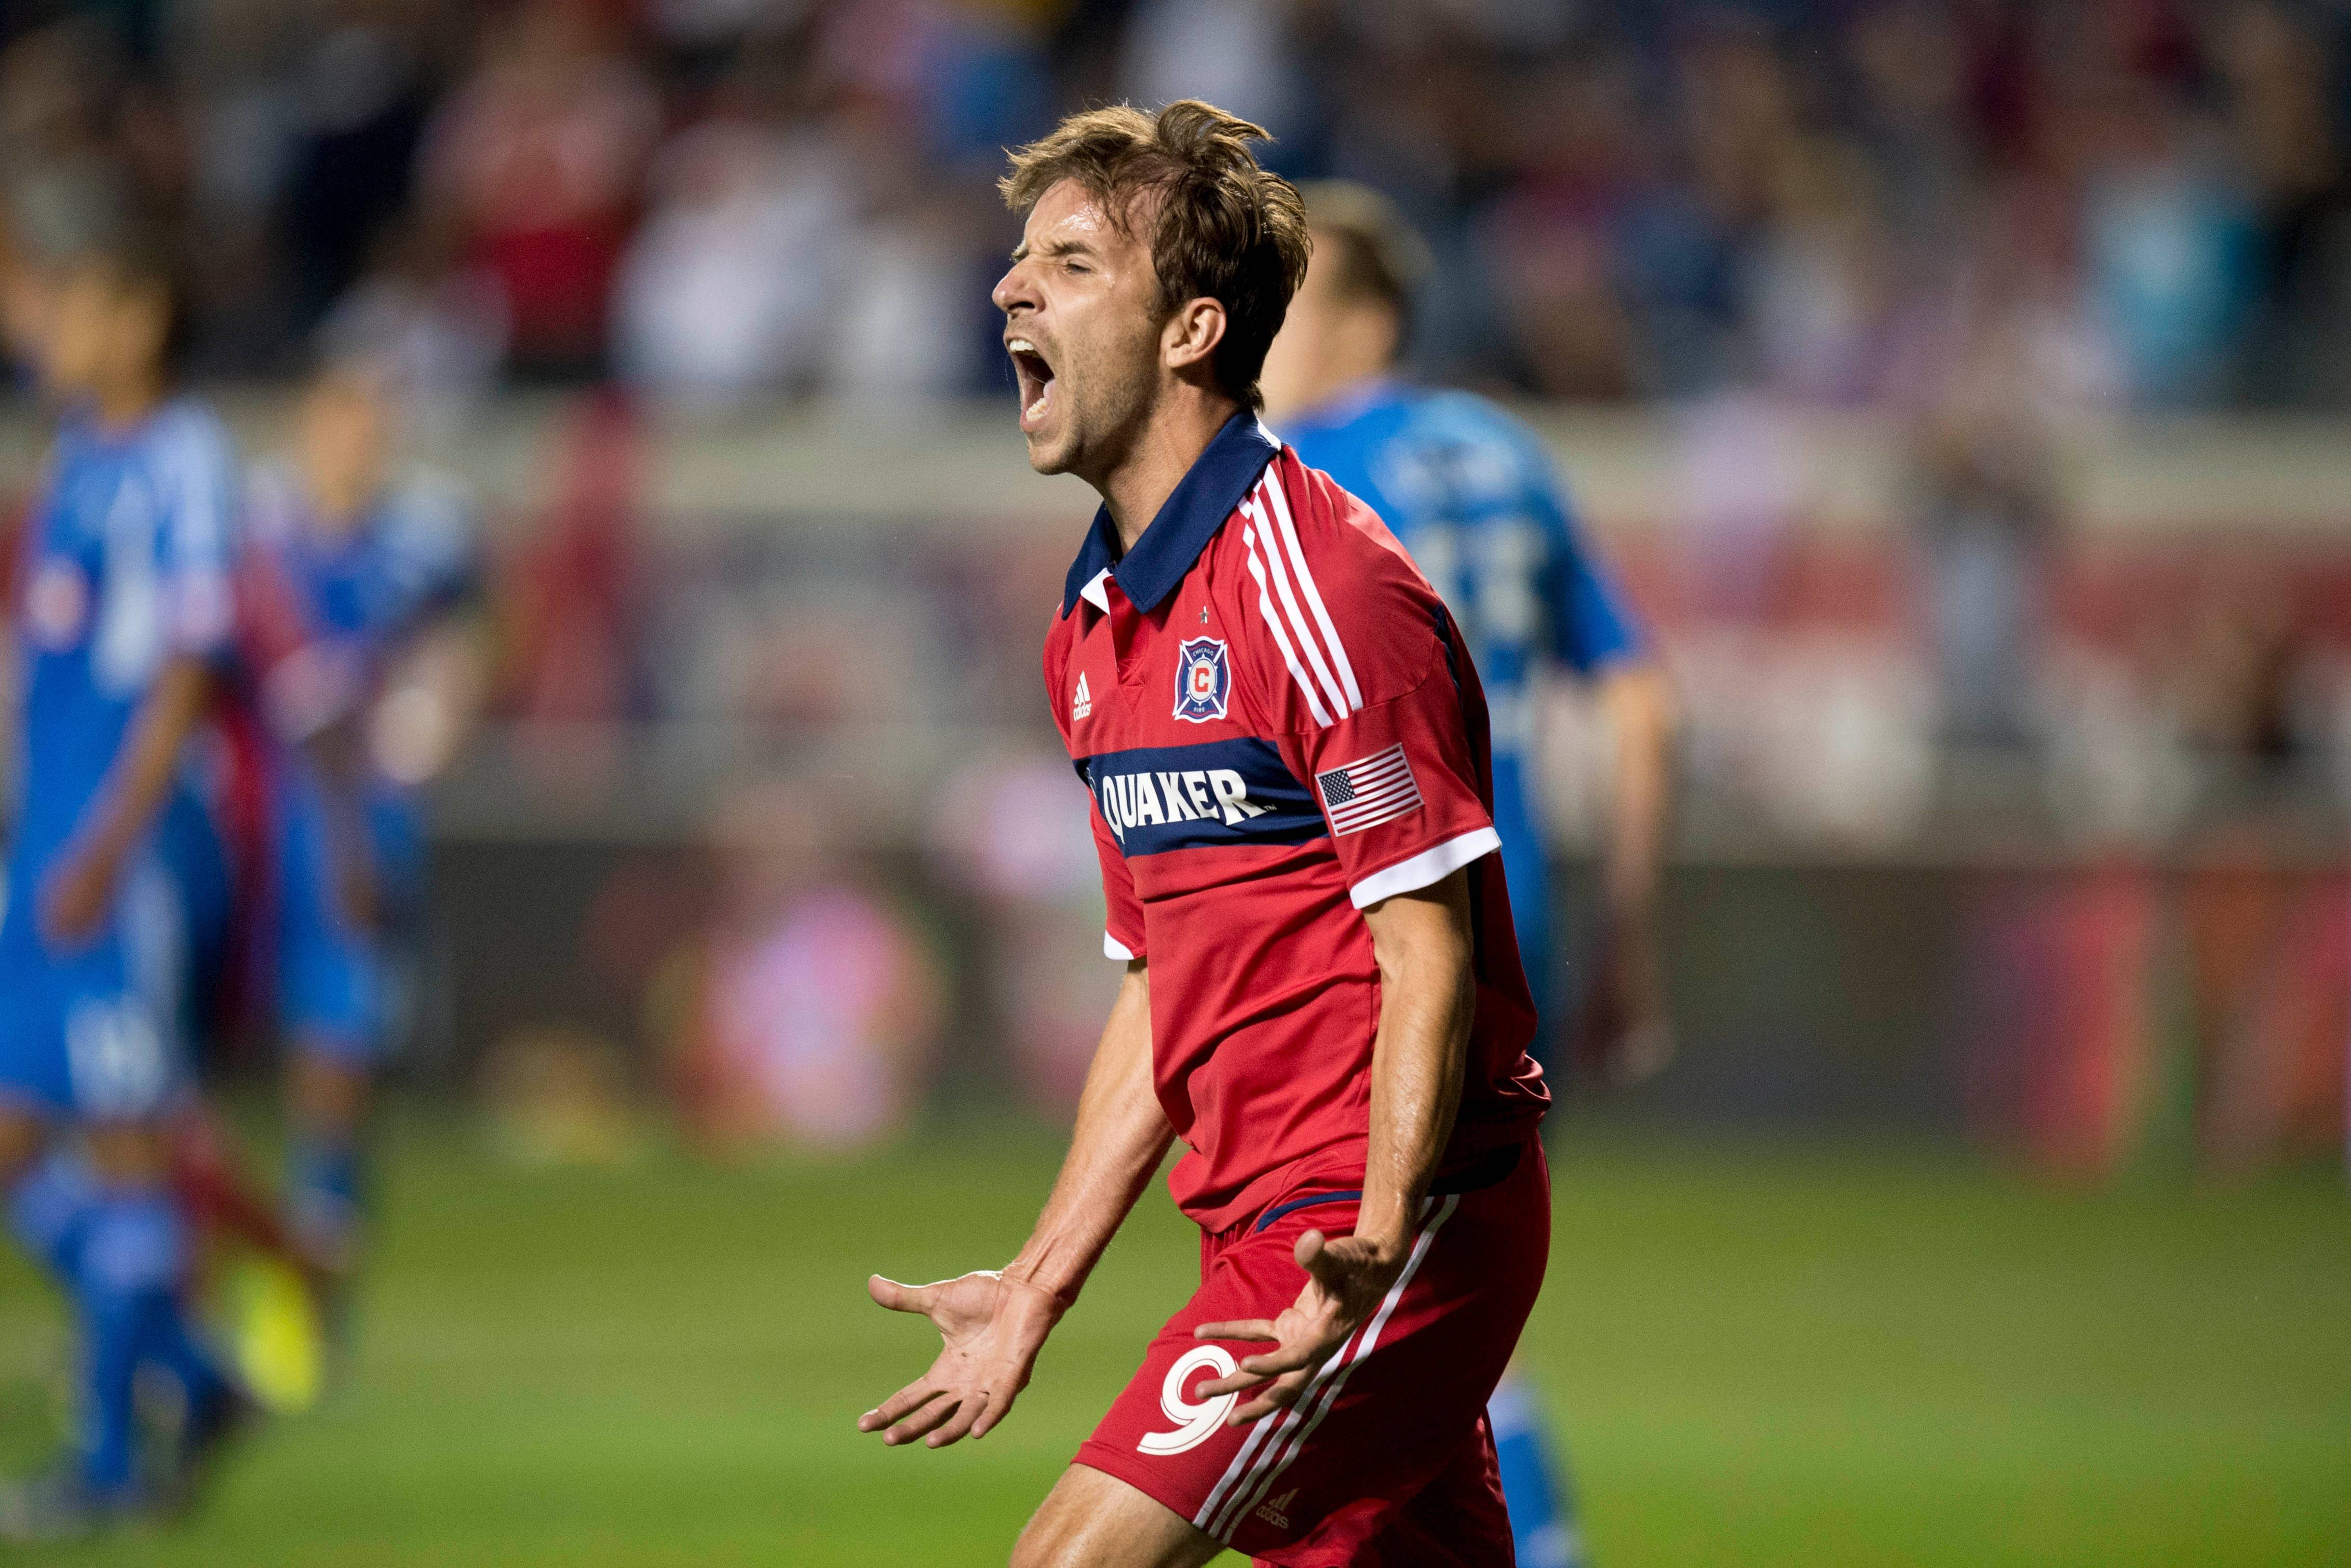 In this photo provided by the Chicago Fire, Chicago Fire forward Mike Magee celebrates his goal during the second half of an MLS soccer game against the Montreal Impact, Saturday, Sept. 28, 2013 in Bridgeview, Ill. The Fire and Impact tied 2-2. (AP Photo/Chicago Fire, Brian Kersey)